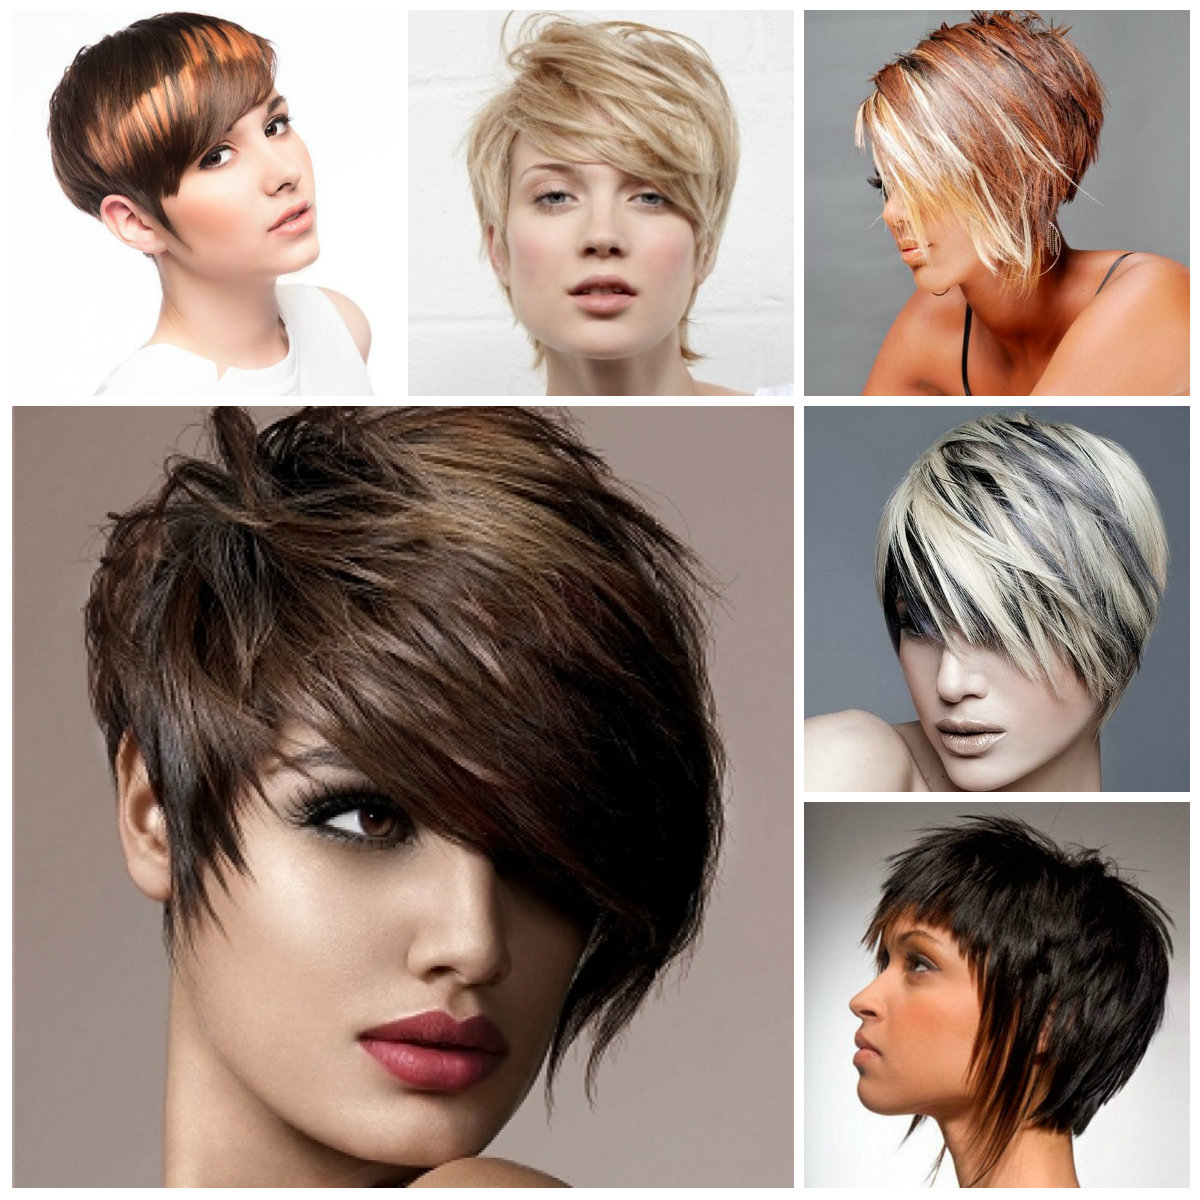 Layered Hairstyles | Hairstyles For Women 2019, Haircuts For Long In Short To Medium Feminine Layered Haircuts (Gallery 18 of 20)